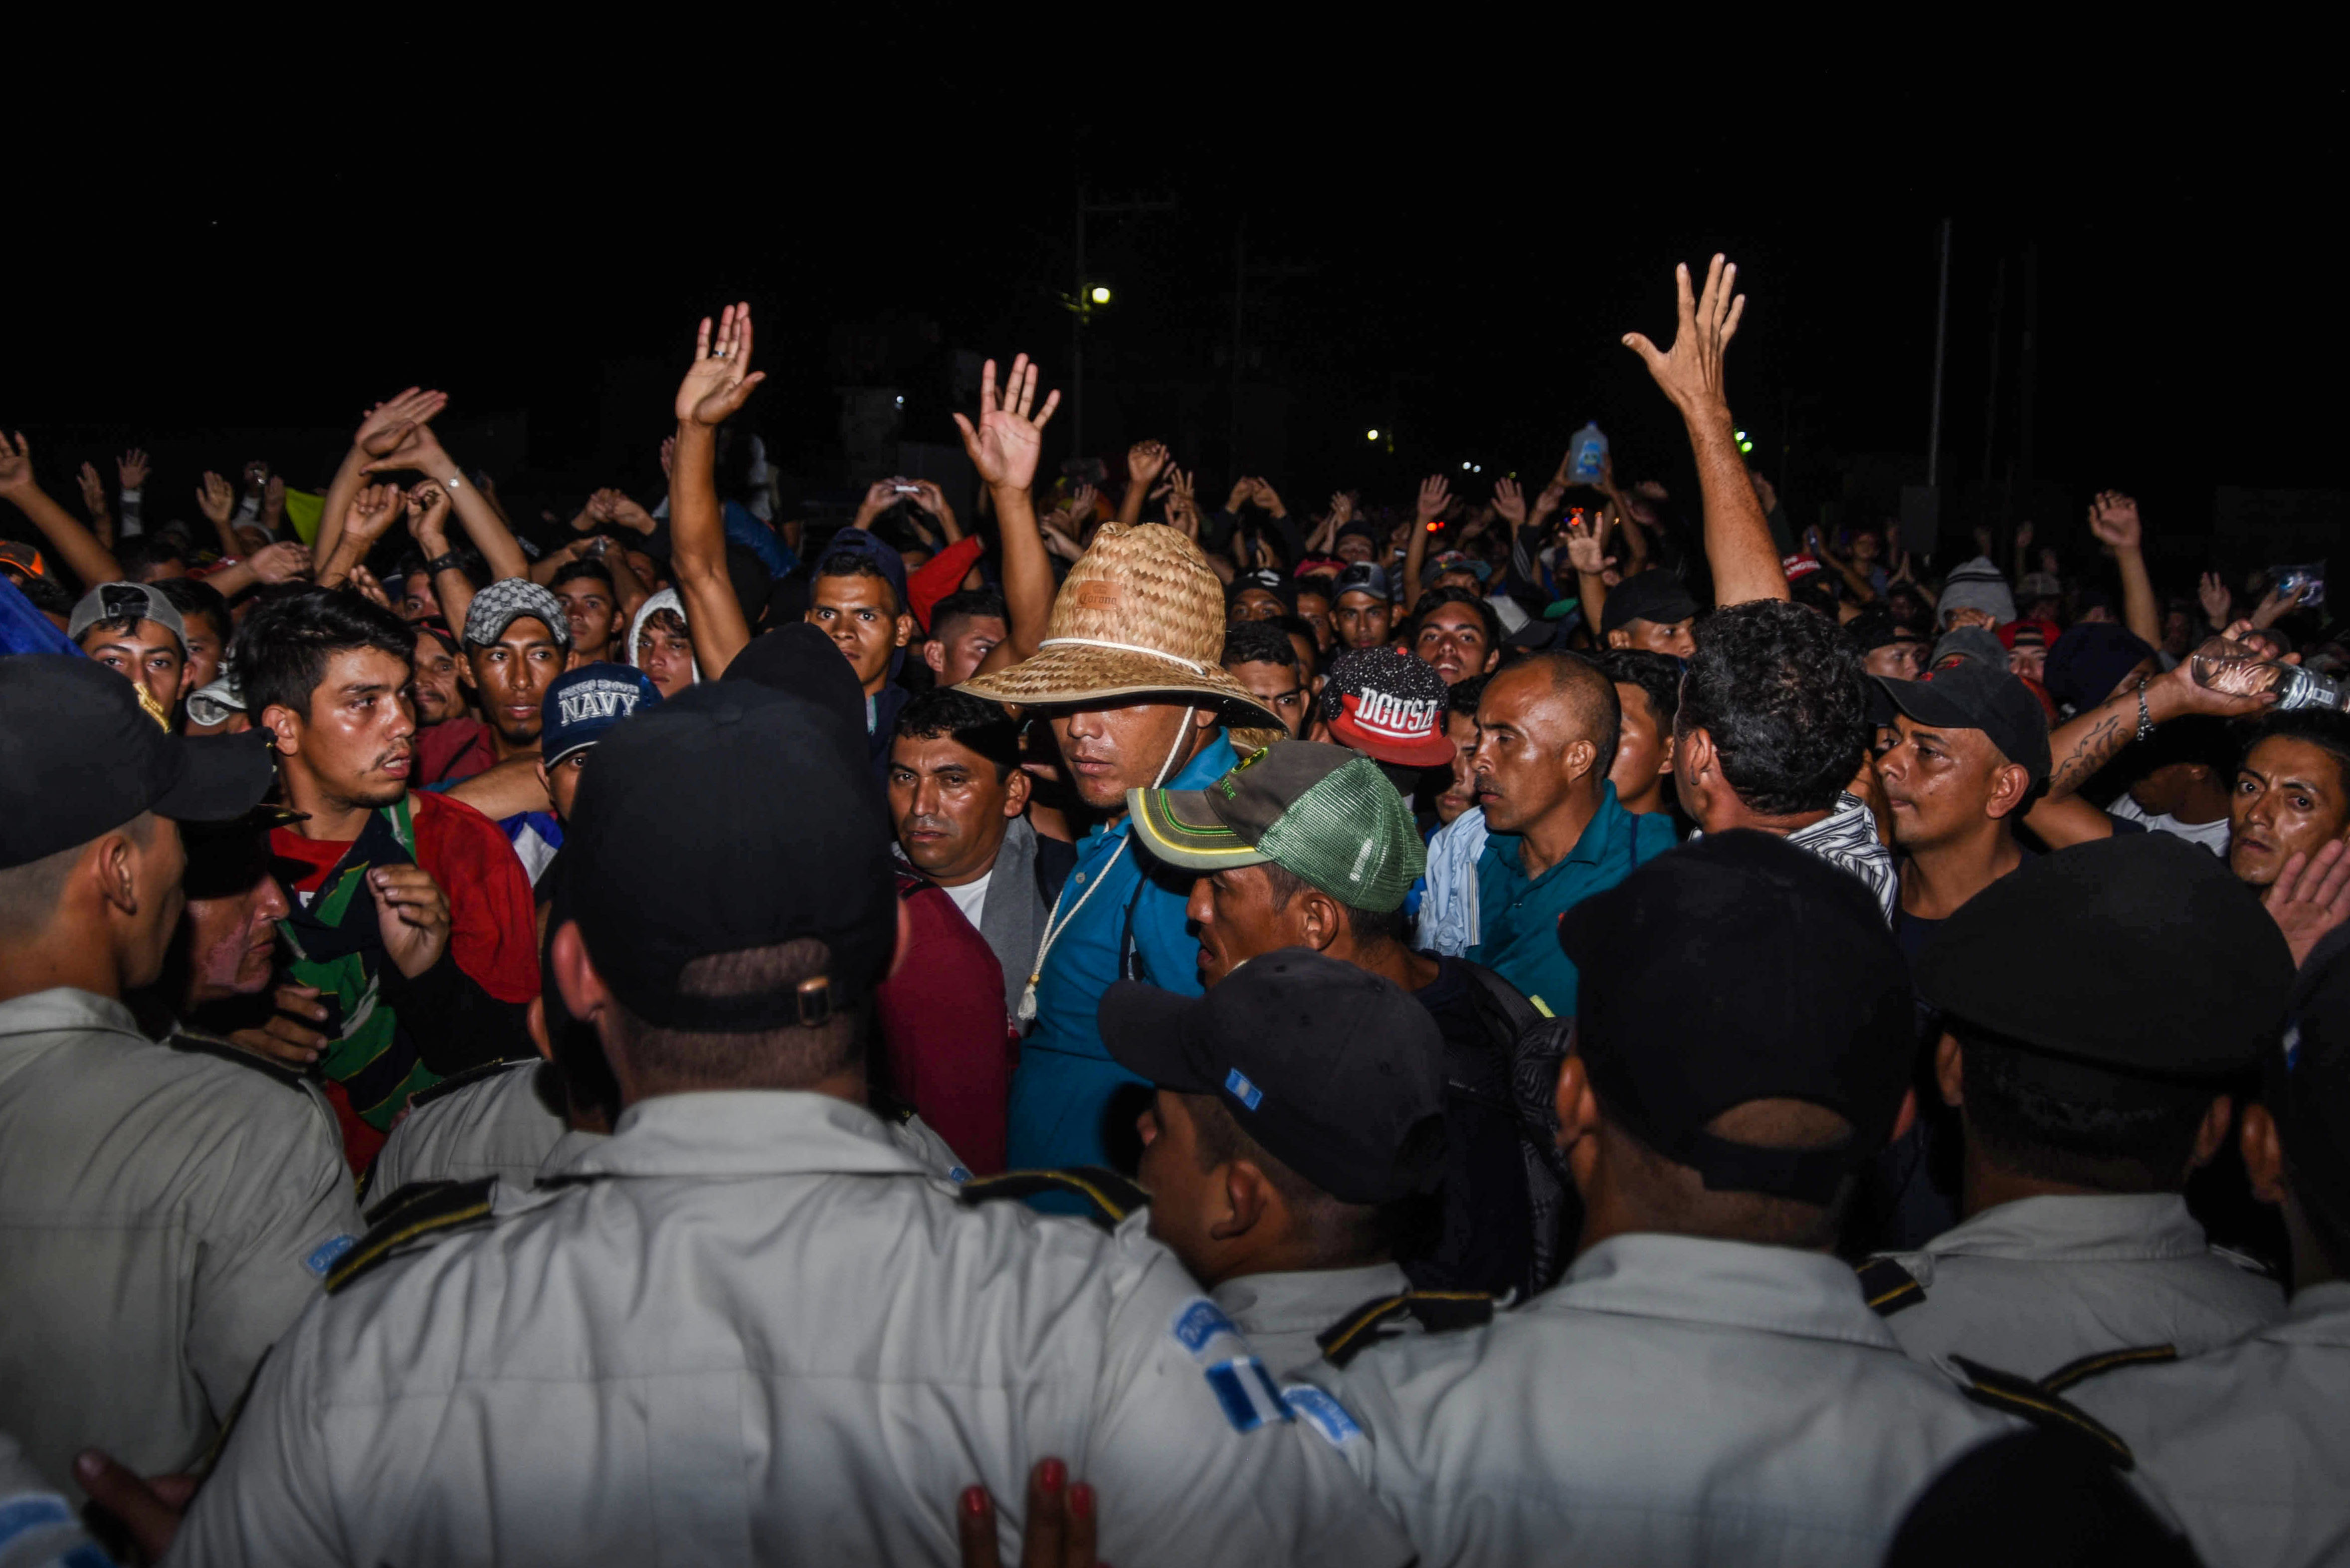 Honduran migrants taking part in a new caravan heading to the US, talk with Guatemalan police officers on their arrival to Chiquimula, Guatemala, on October 22, 2018